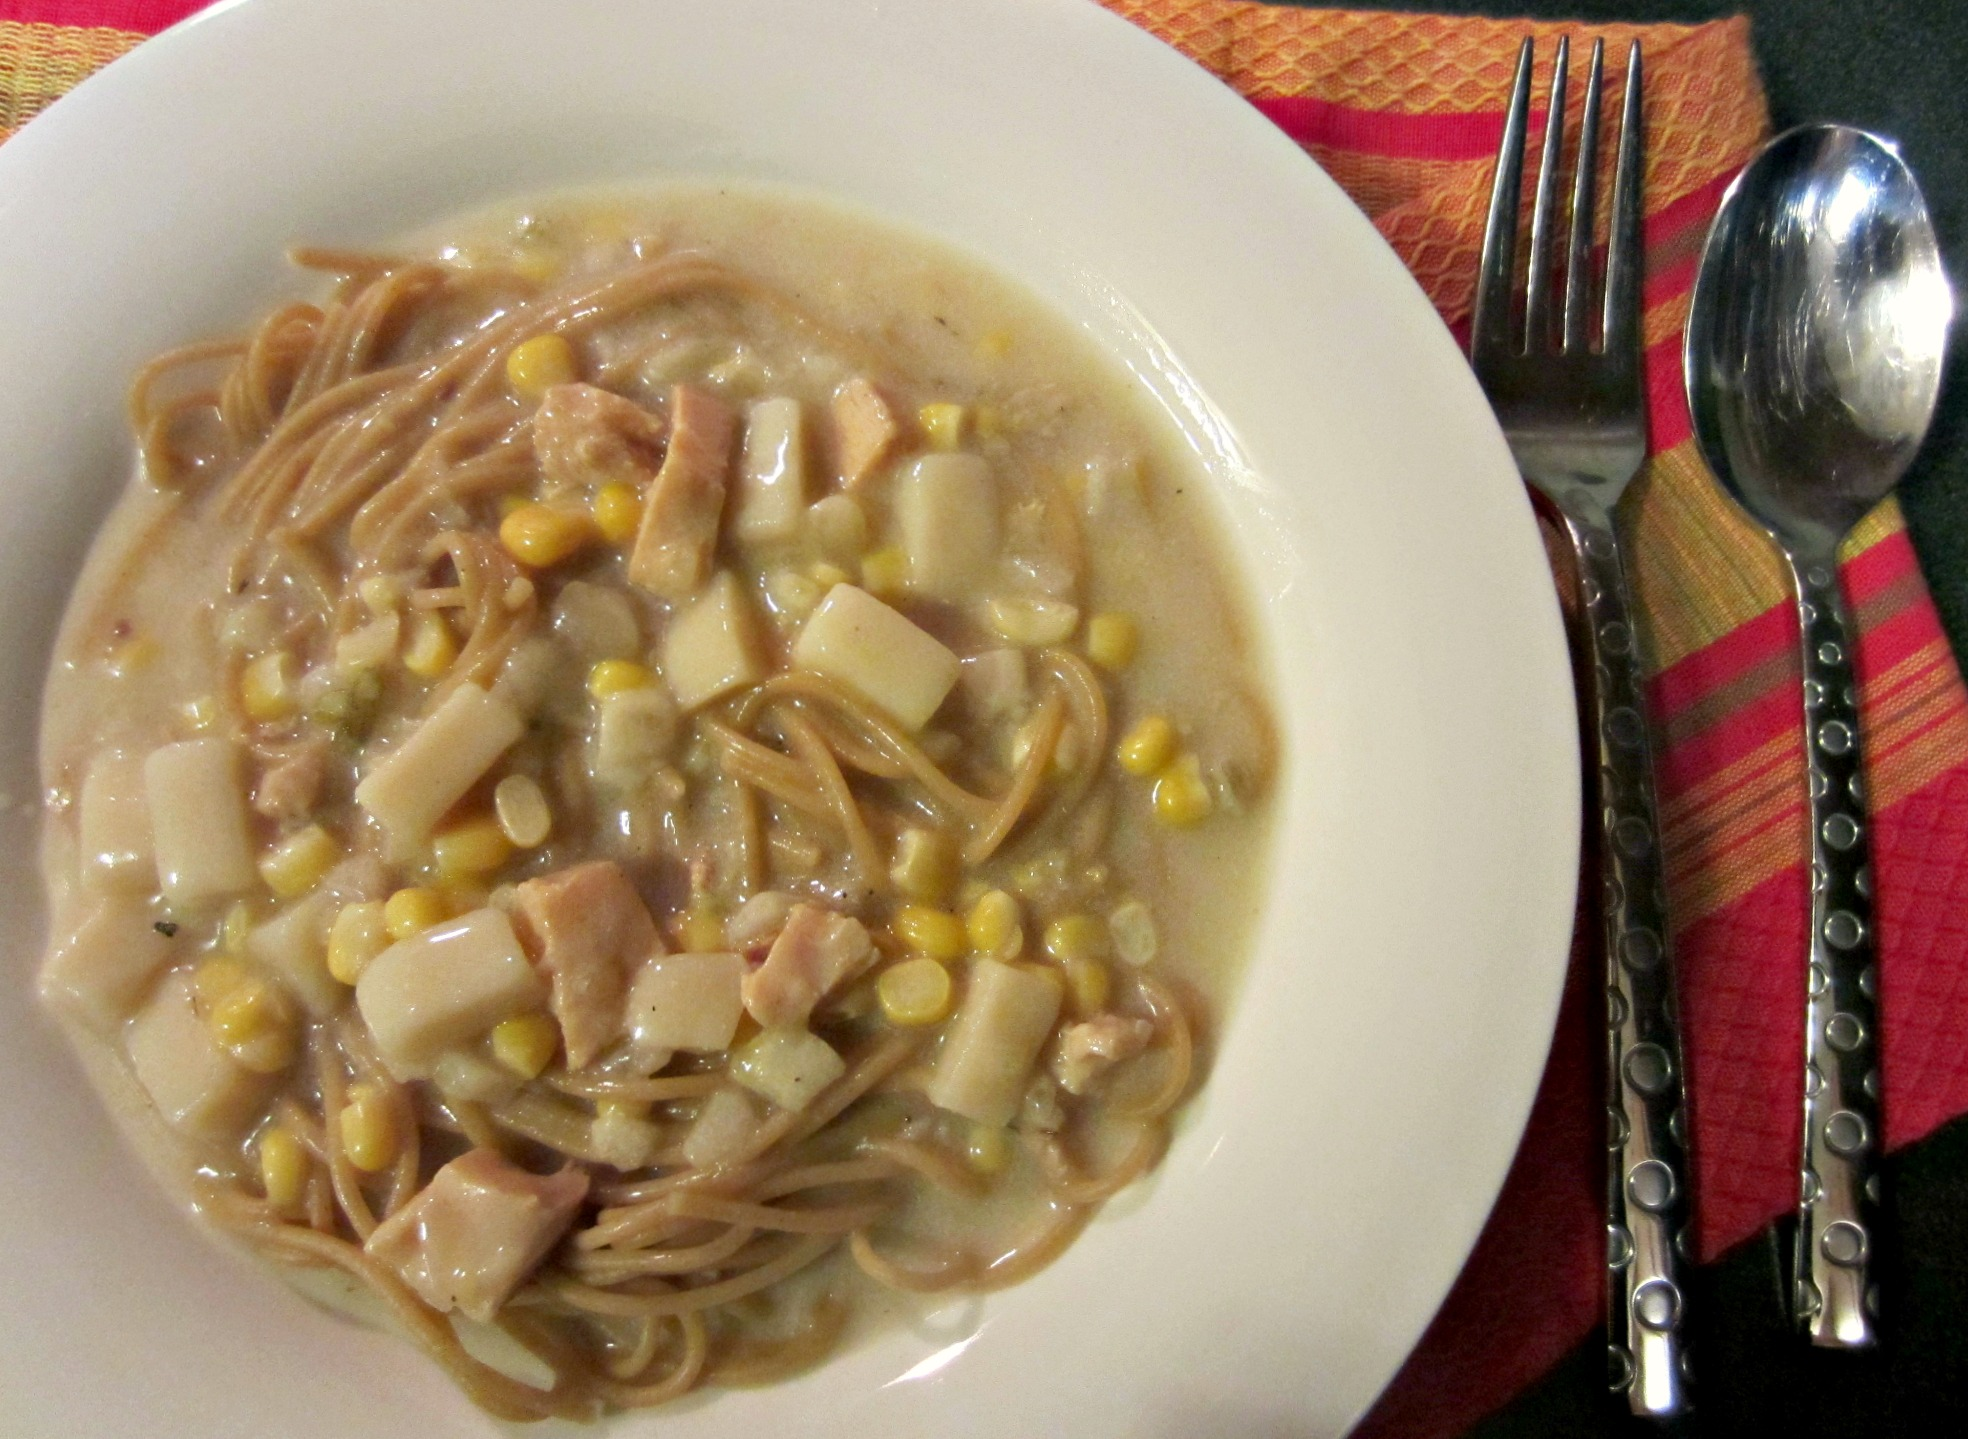 Progresso Light Chicken Corn Chowder over noodles